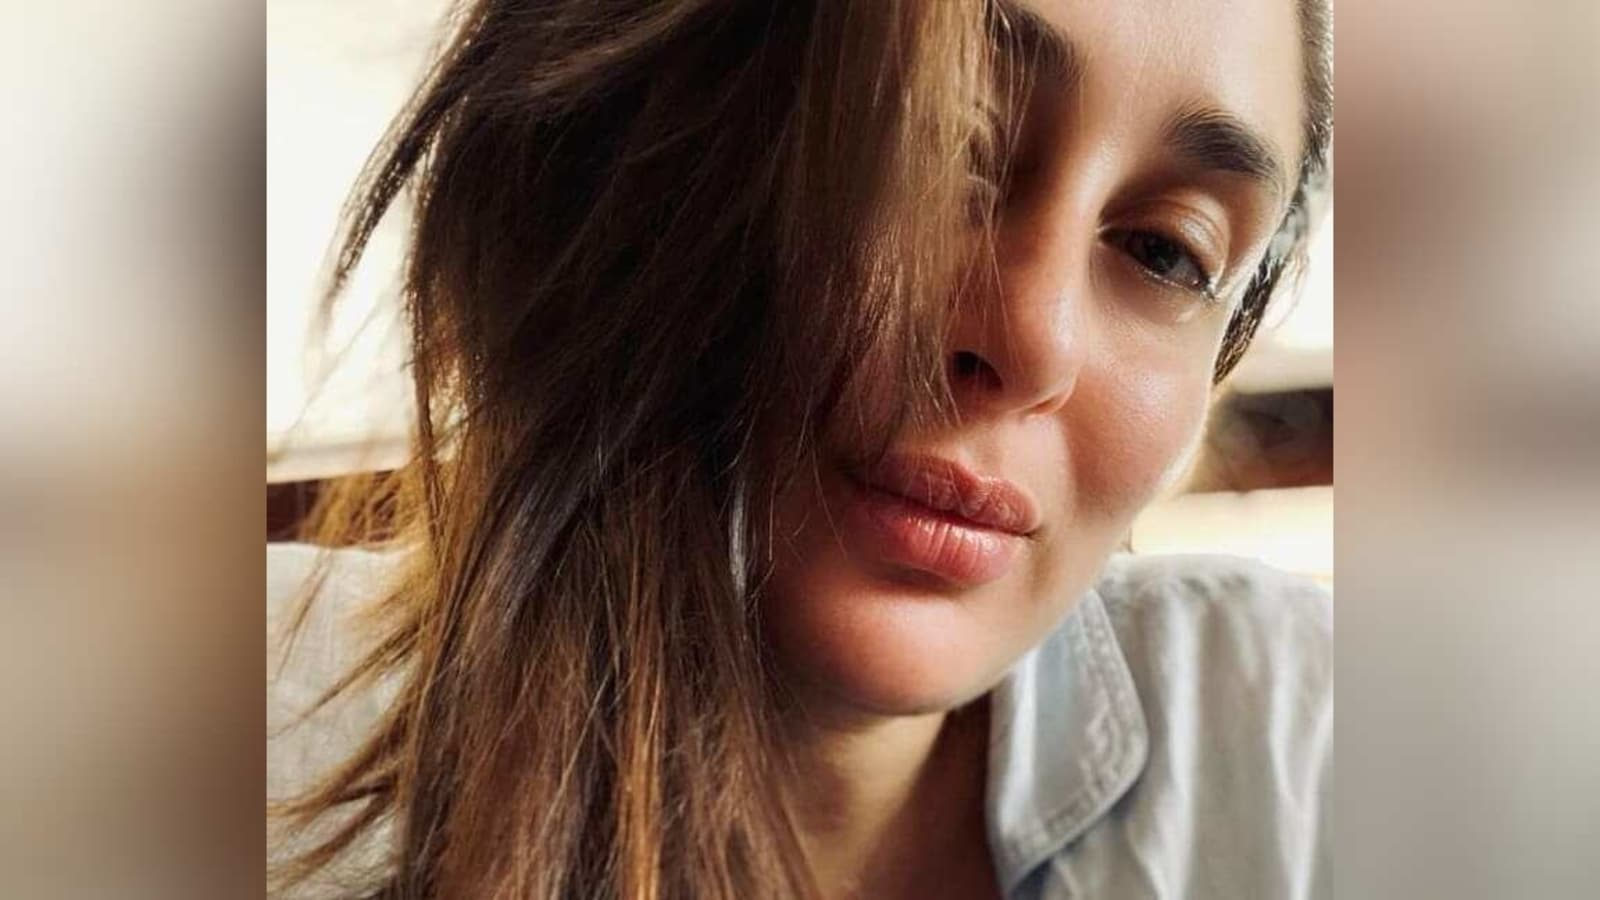 Kareena Kapoor Khan looks forward to the weekend with stunning no-makeup selfie and Mean Girls-inspired quote - Hindustan Times